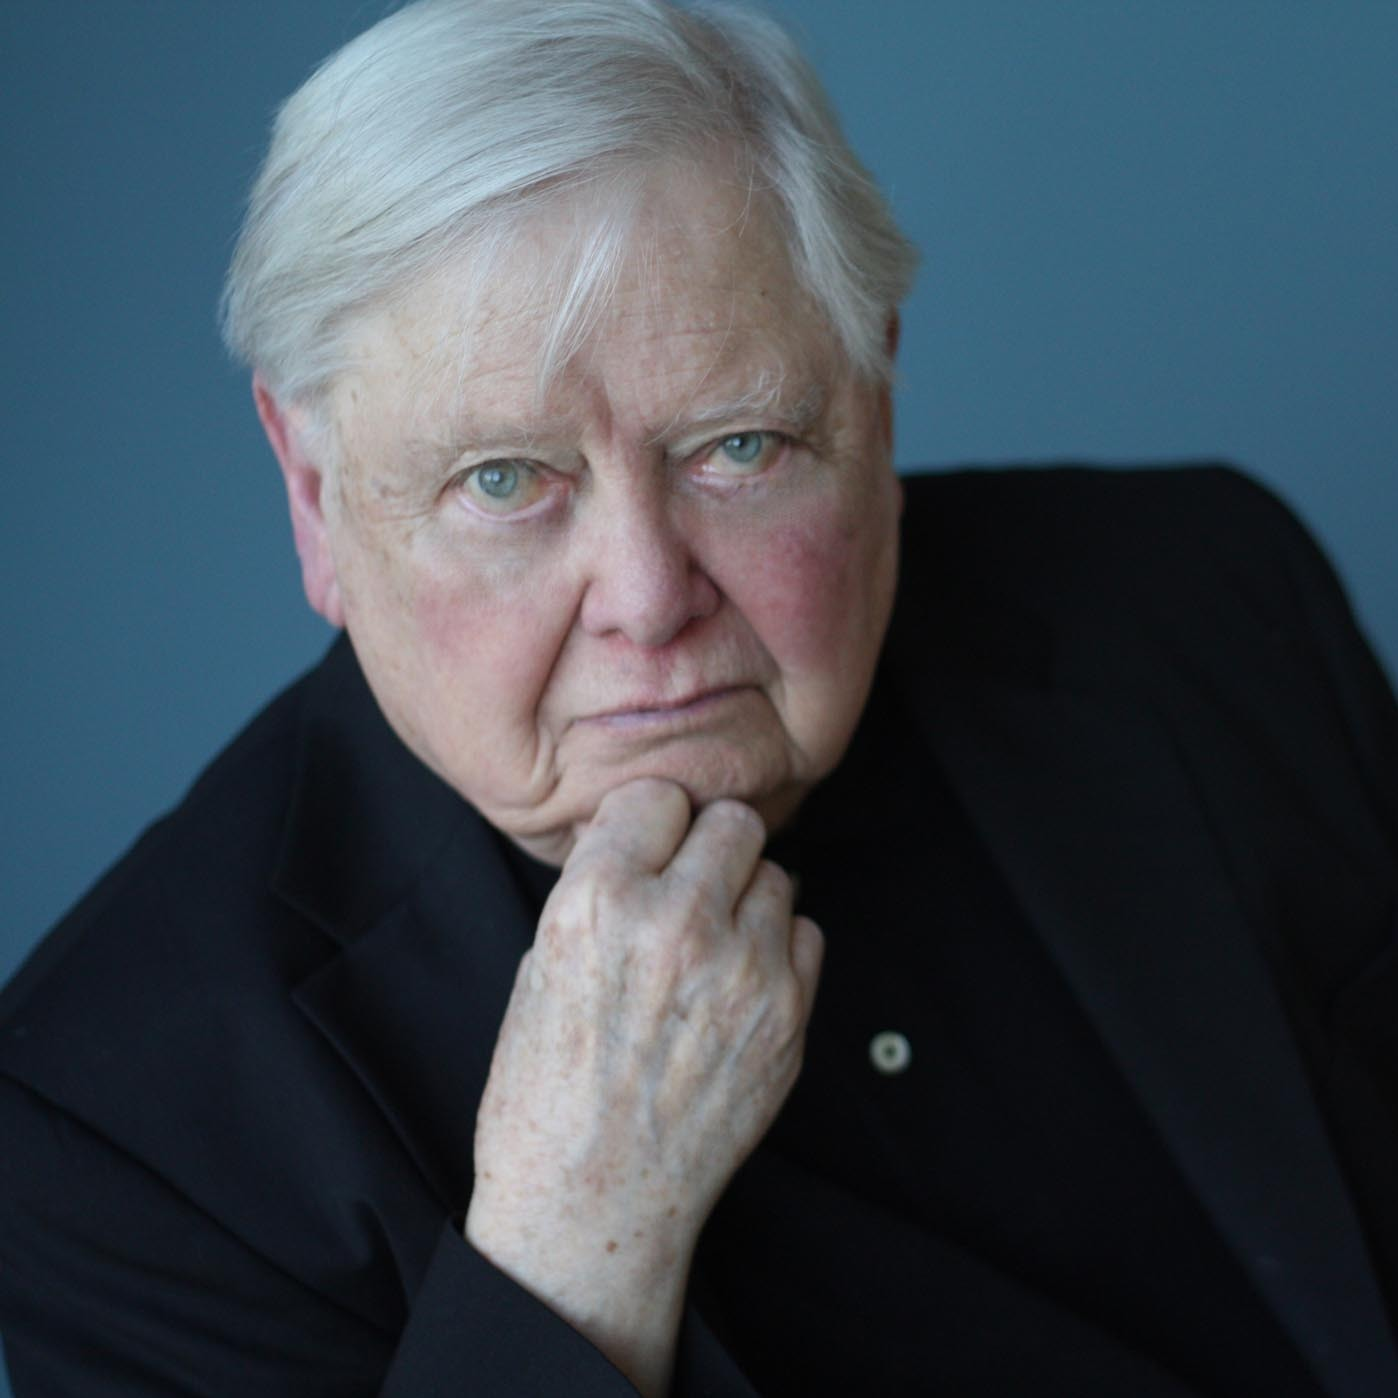 William Gass has been writing stories, novels and criticism for more than 50 years. His most recent book was Middle C.